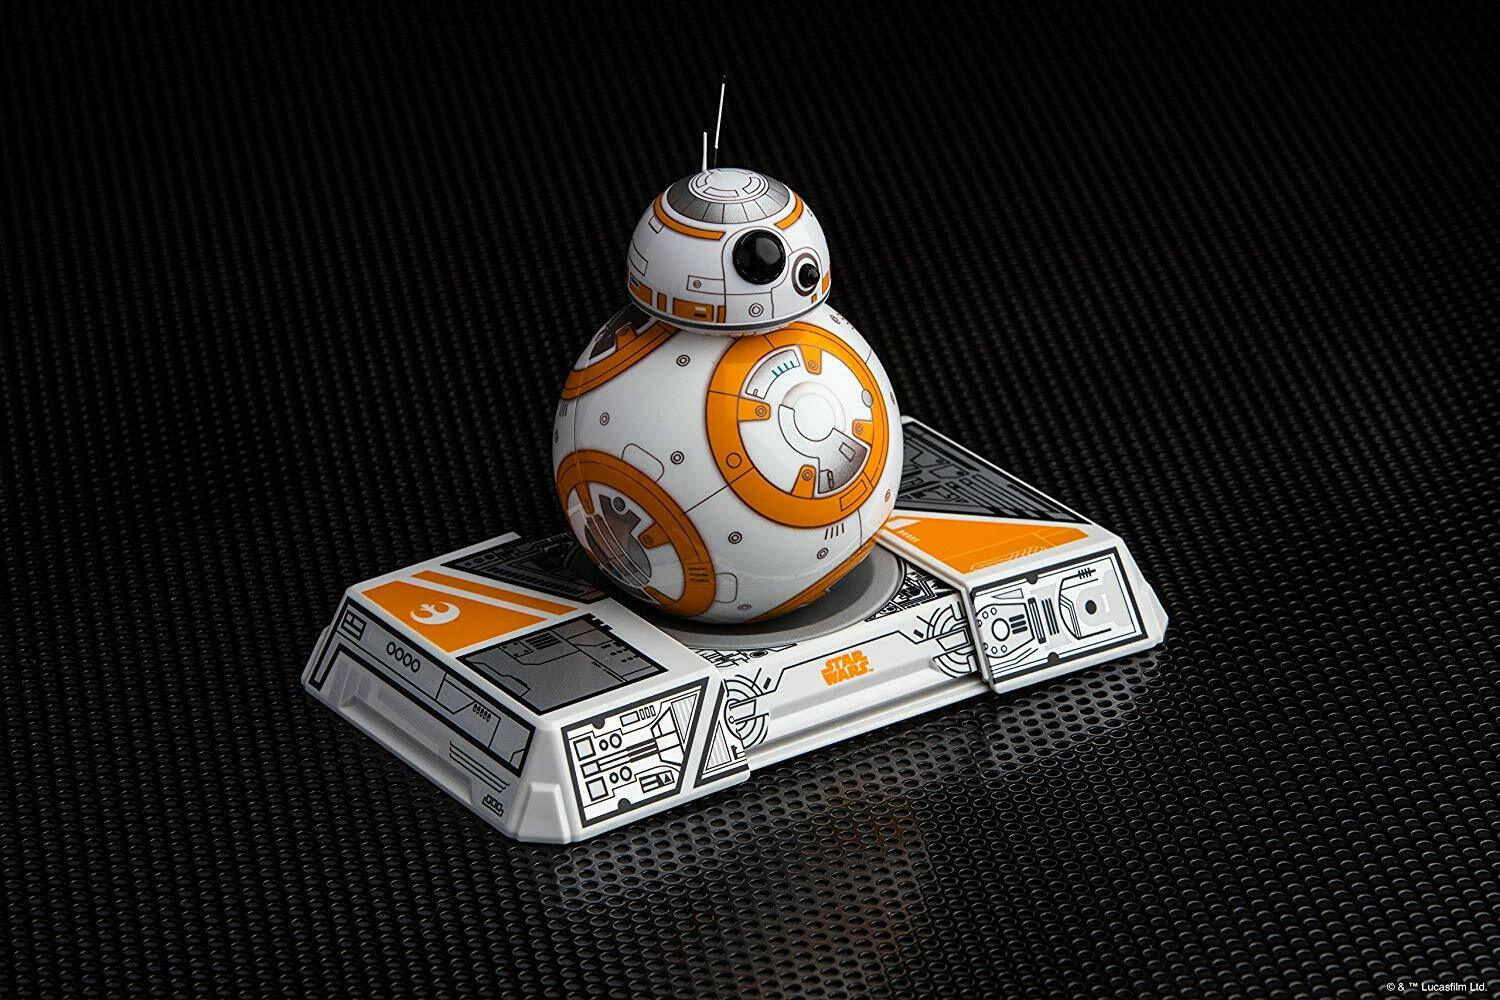 BB-8 App-enabled Droid by Sphero avec Trainer